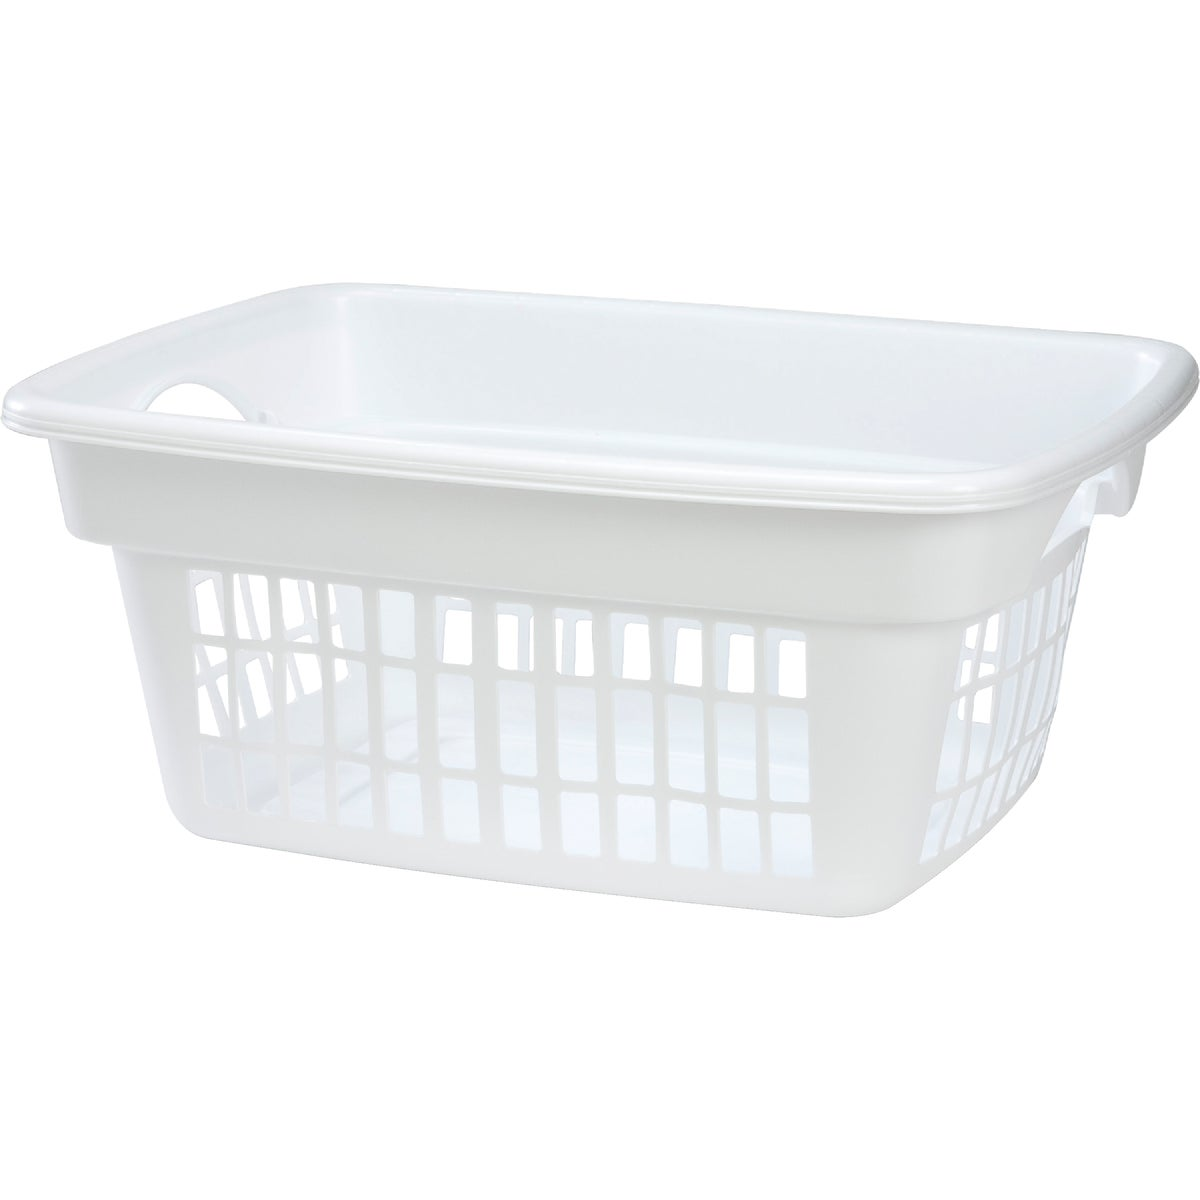 WHITE LAUNDRY BASKET - 2874 by Rubbermaid Home